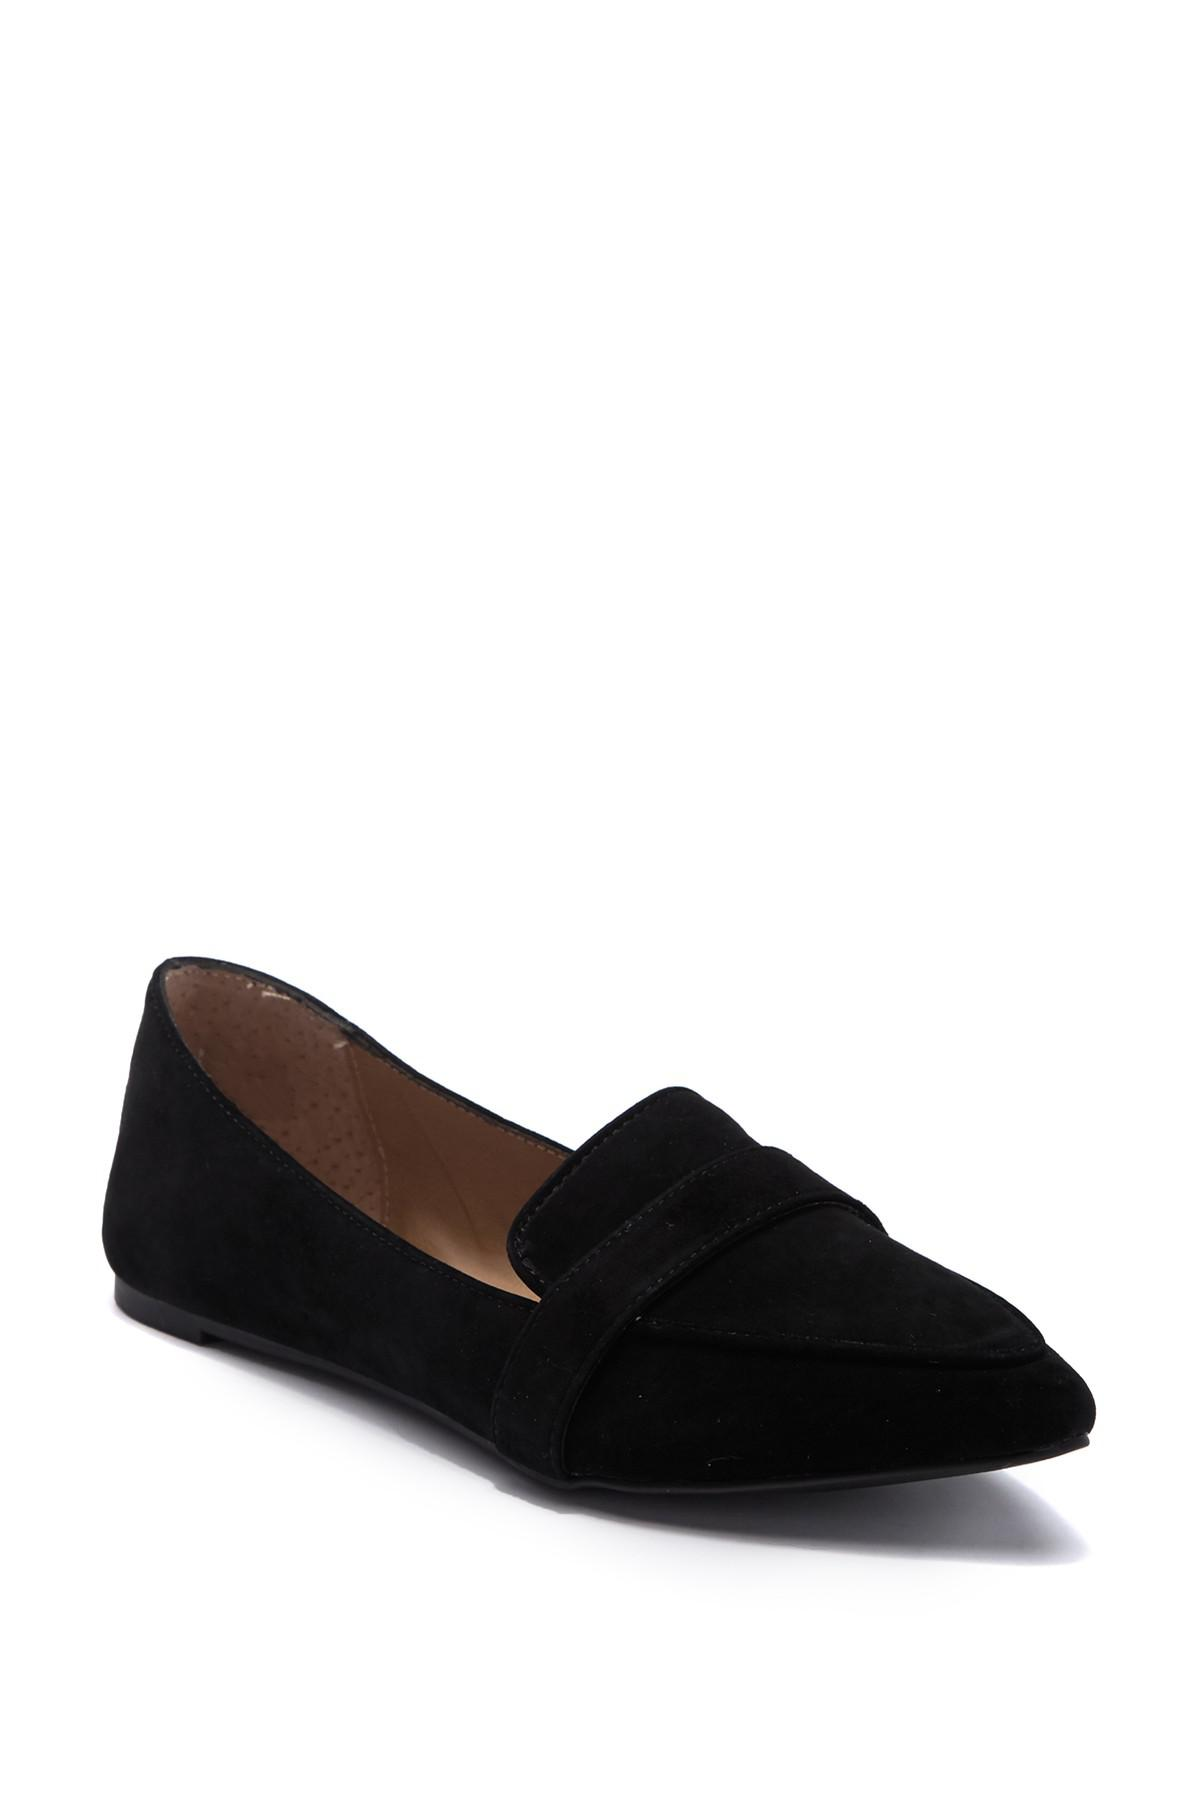 f6d5a43f065 Lyst - Steve Madden Jainna Suede Penny Loafer in Black